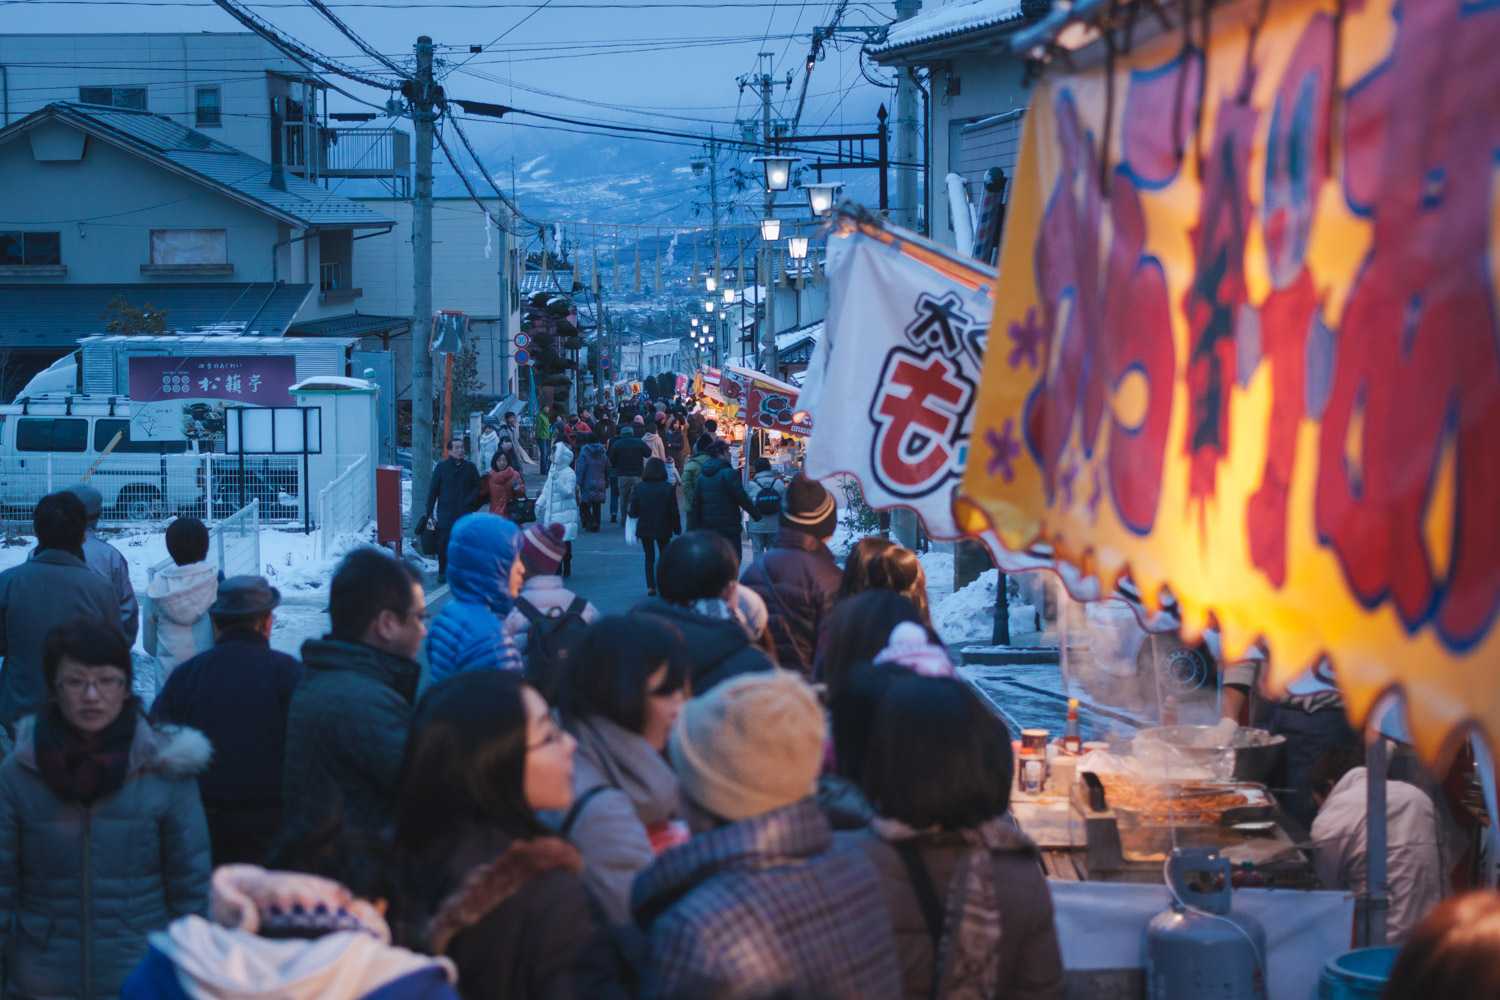 Food vendors line the streets as crowds visit Bessho Onsen, Nagano, Japan during the New Year festival